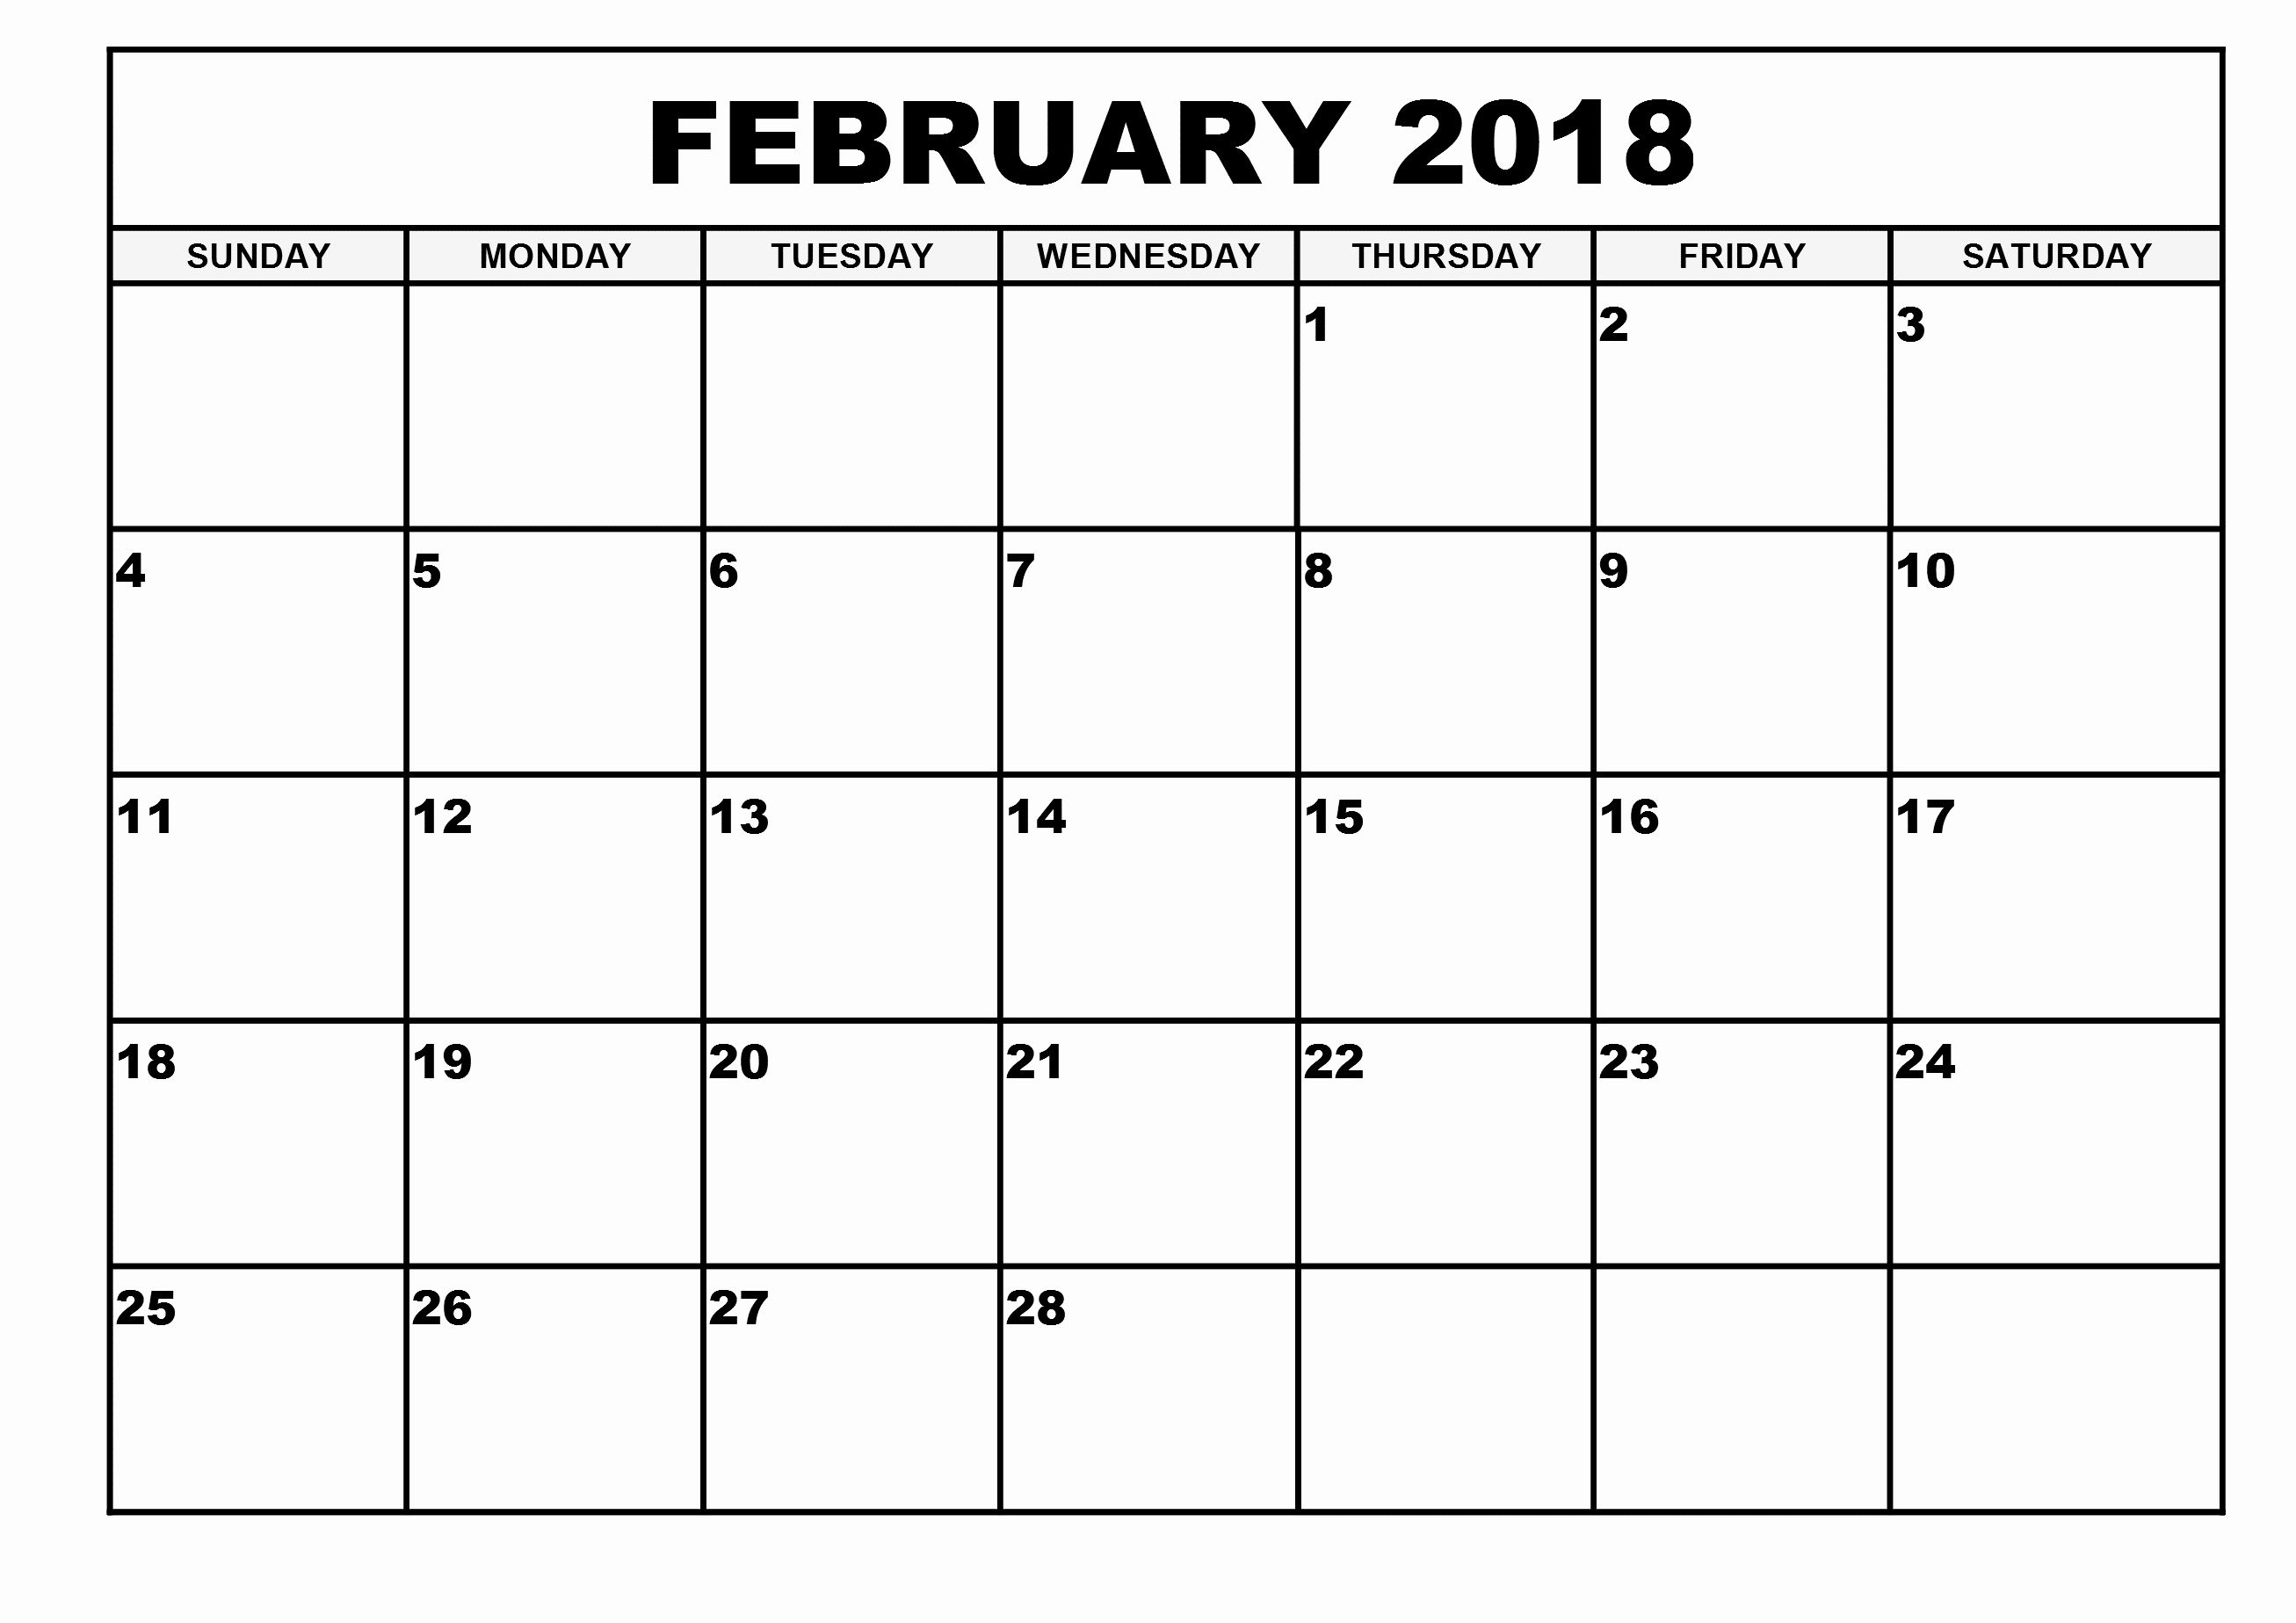 Calendar Pages February 2019 February 2019 Calendar Template #February #february2019